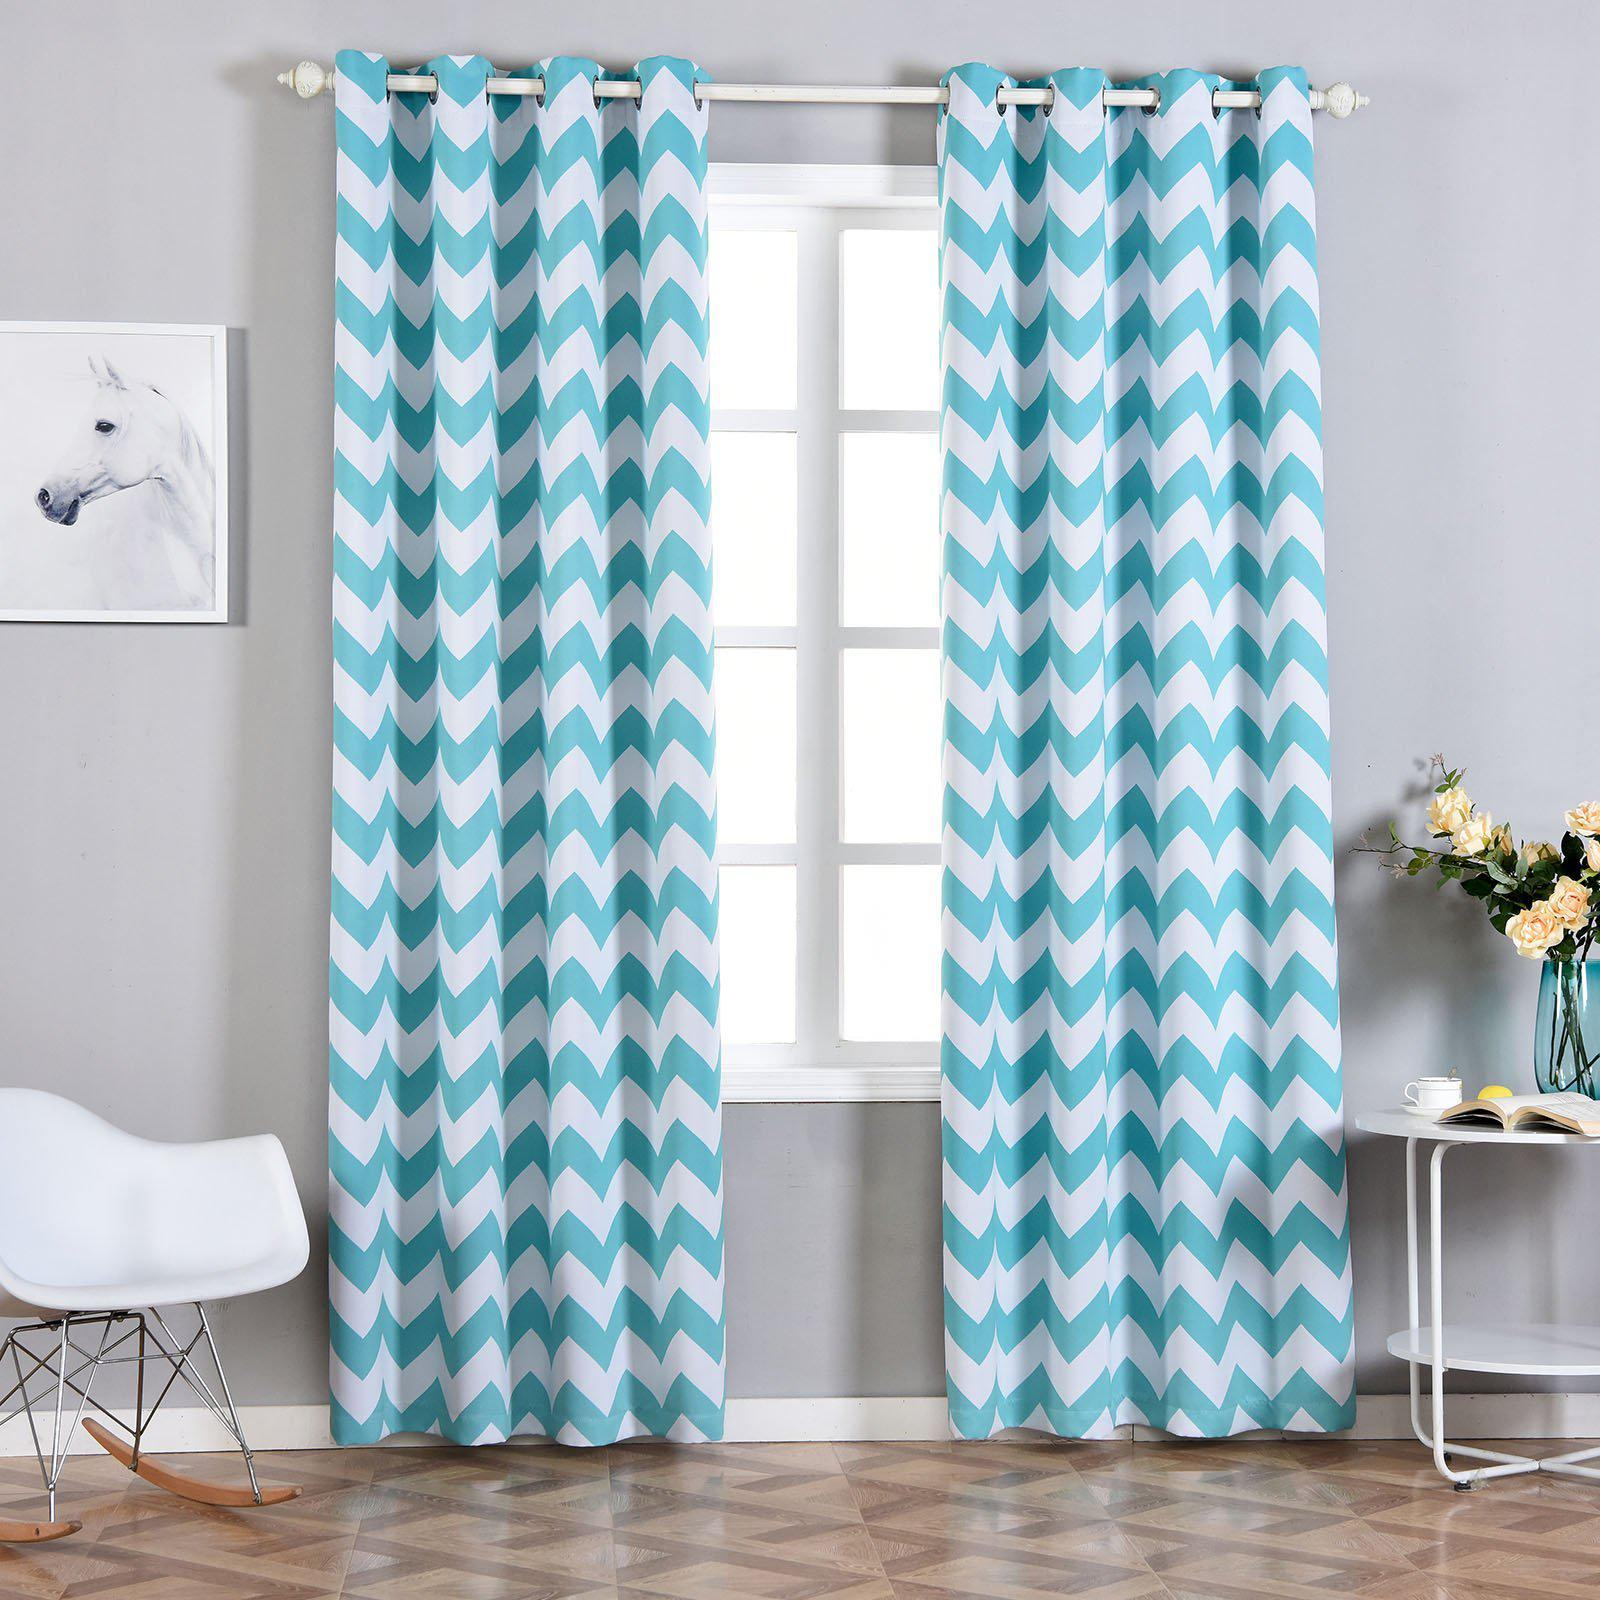 sliding eclipse large patio door panel for top grommet blackout drapes glass size insulated doors of curtains thermal amazon lined curtain extra wide